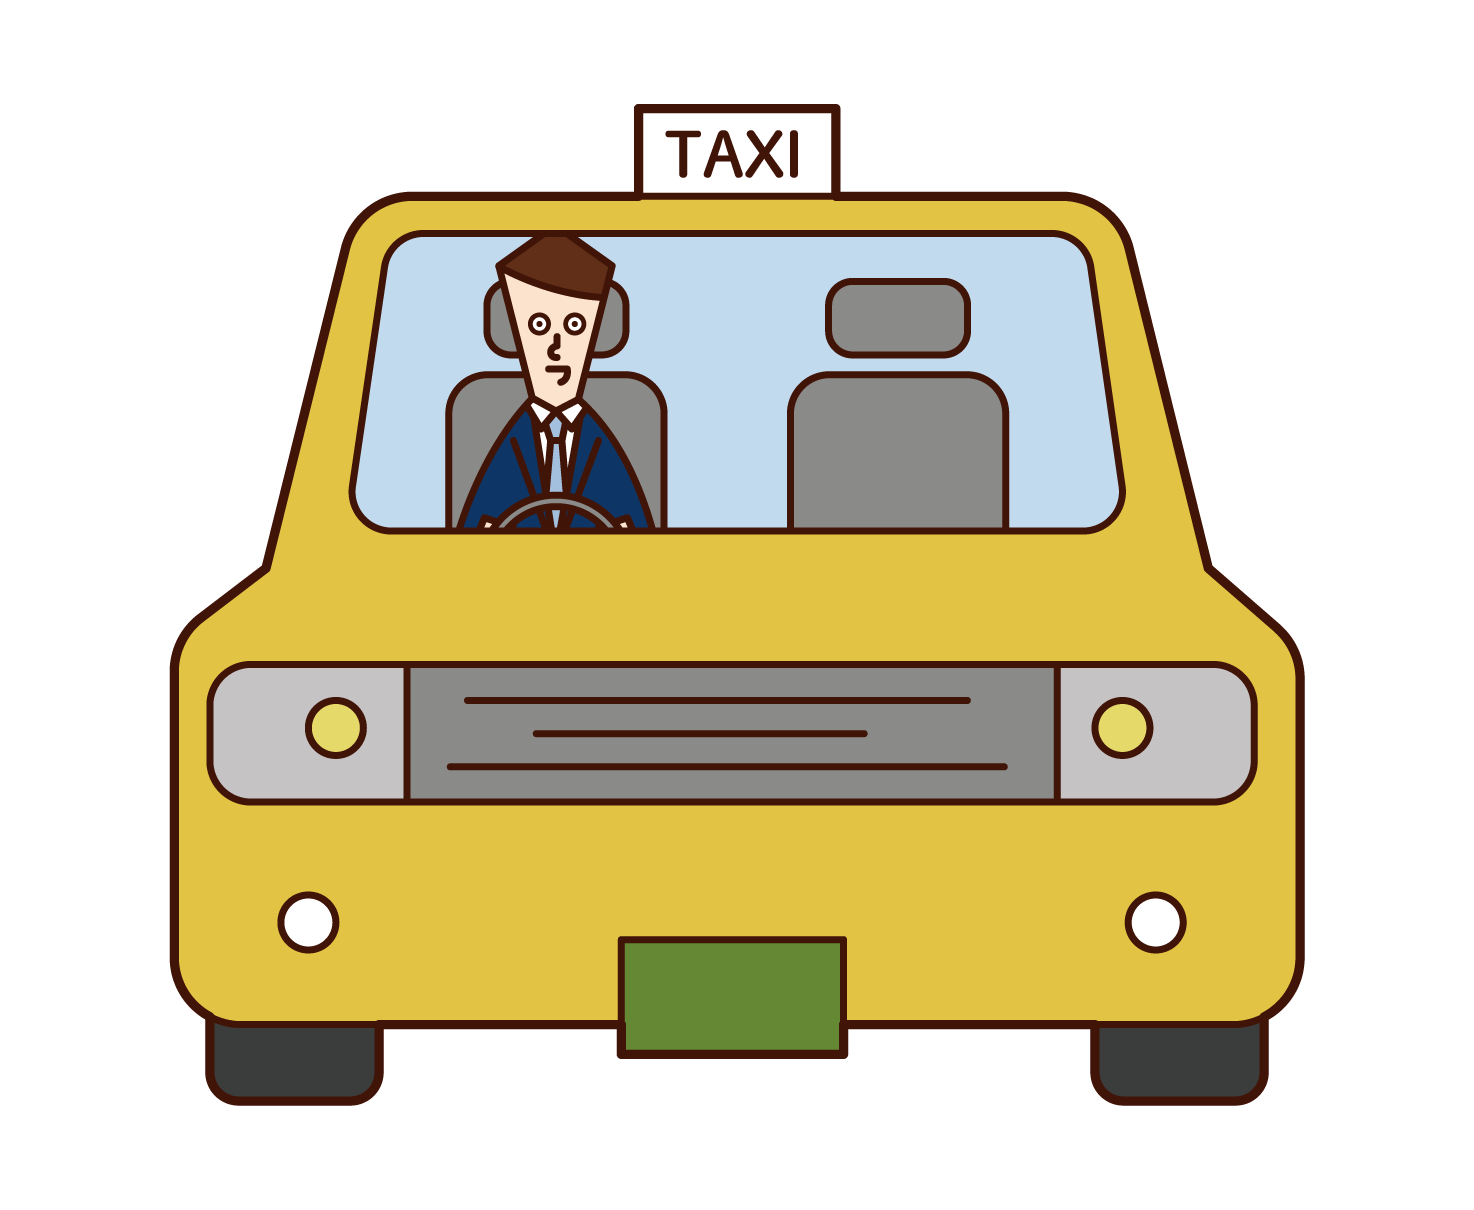 Illustration of a taxi driver (man)